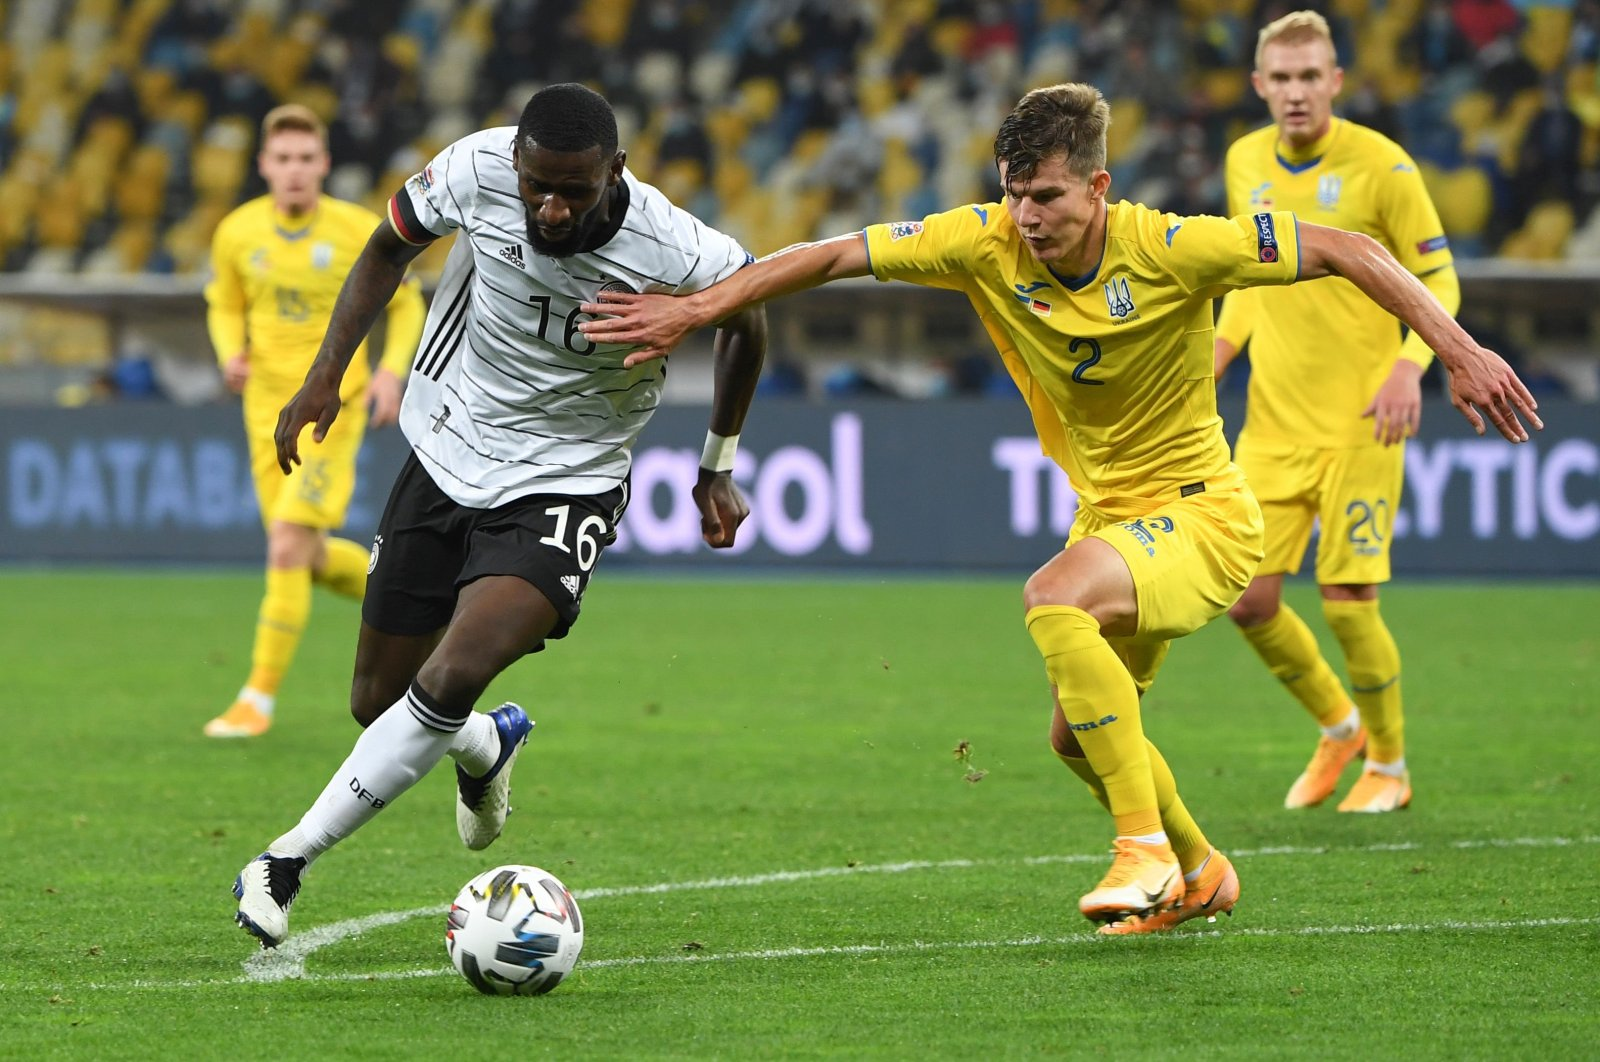 Germany's defender Antonio Rudiger (L) and Ukraine's defender Eduard Sobol vie for the ball during the UEFA Nations League football match between Ukraine and Germany at Olympiyskiy National Sports Complex in Kyiv, Ukraine, Oct. 10, 2020. (AFP Photo)